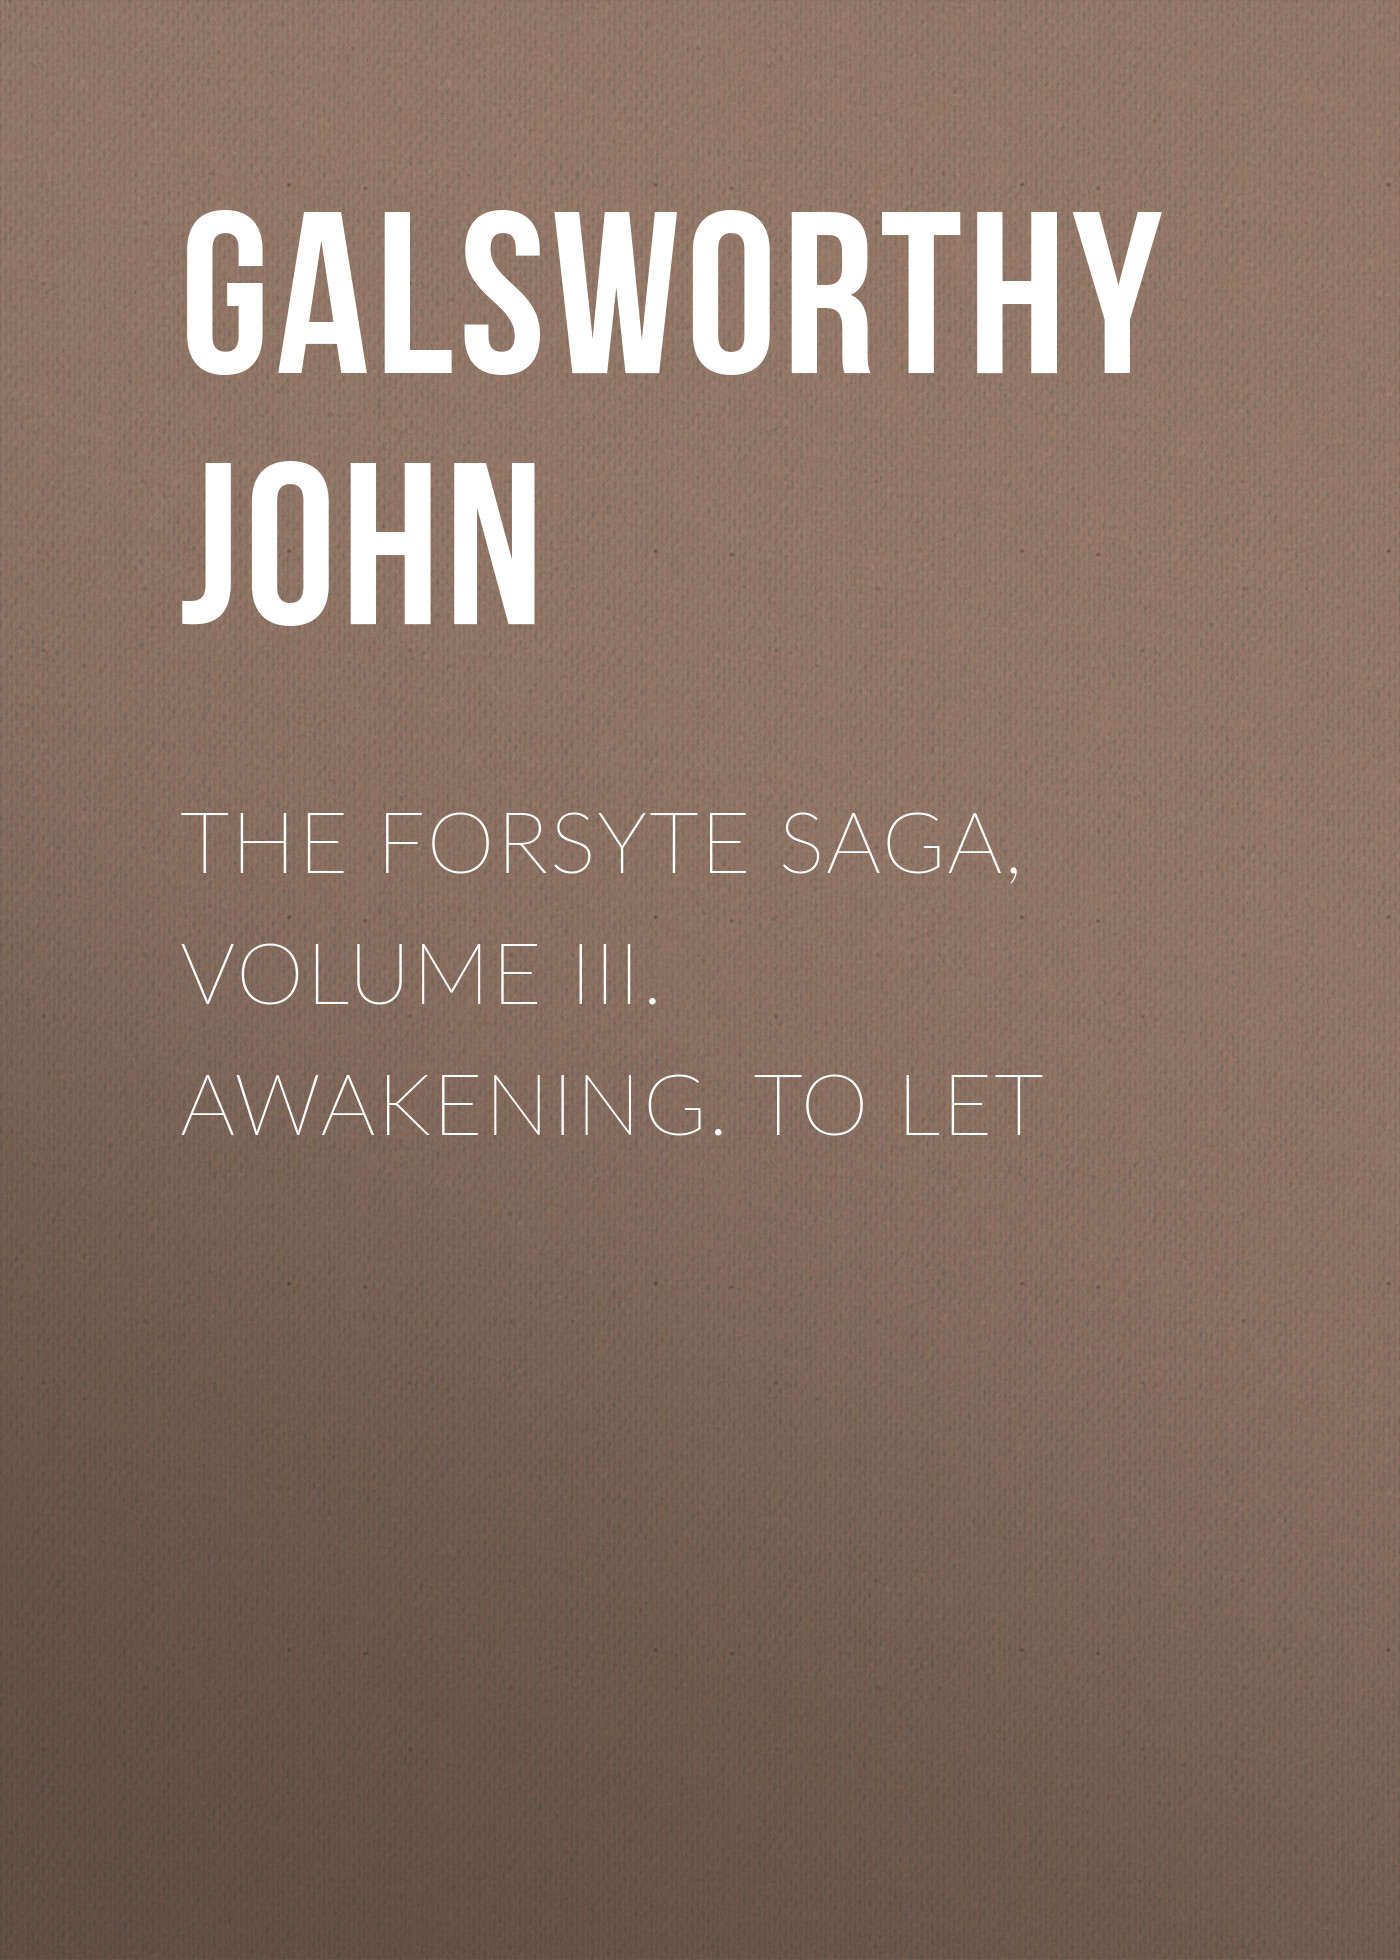 The Forsyte Saga, Volume III. Awakening. To Let